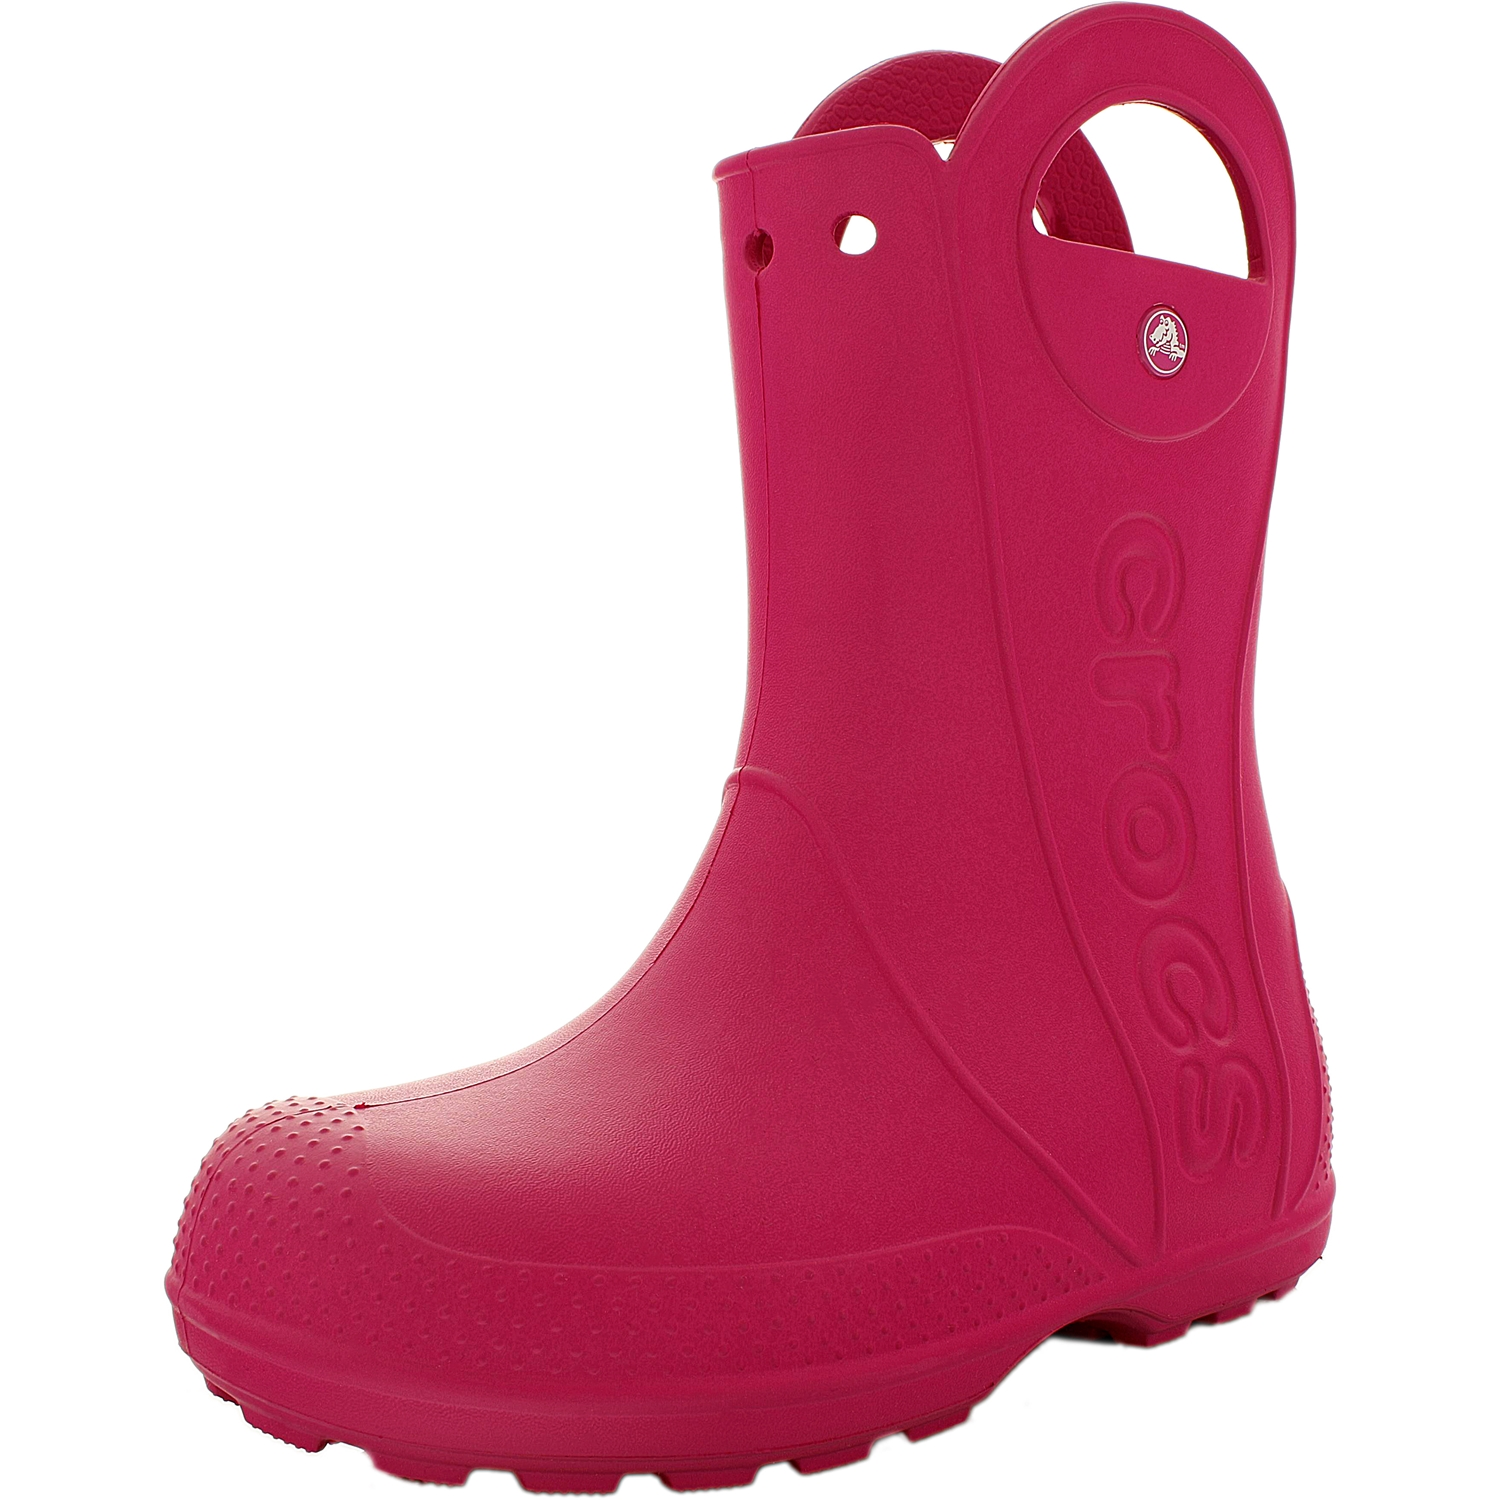 Crocs Girl's Handle It Candy Pink High-Top Boot 12M by Crocs